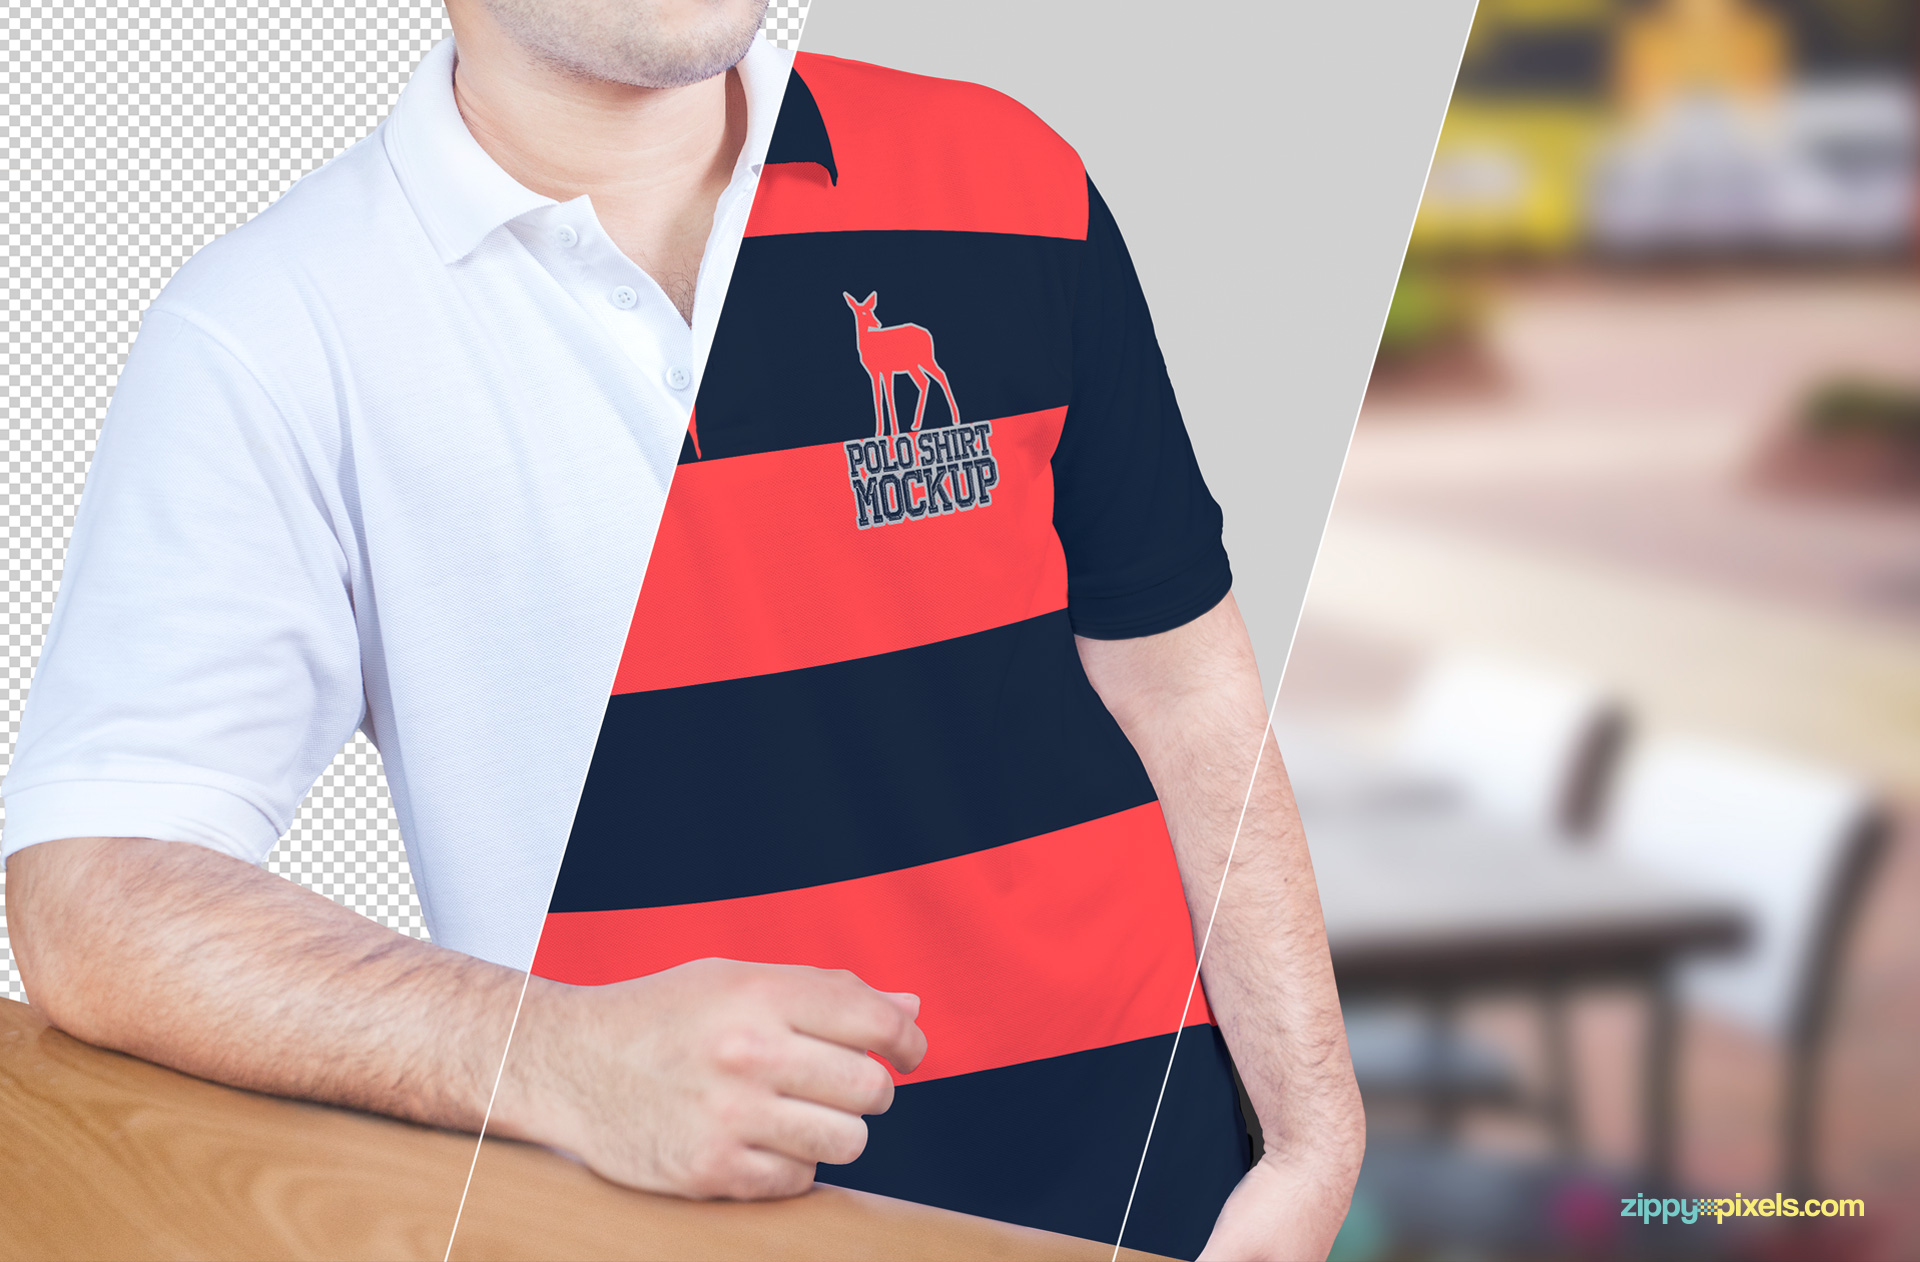 Customize, edit and present your polo shirt designs freely and confidently